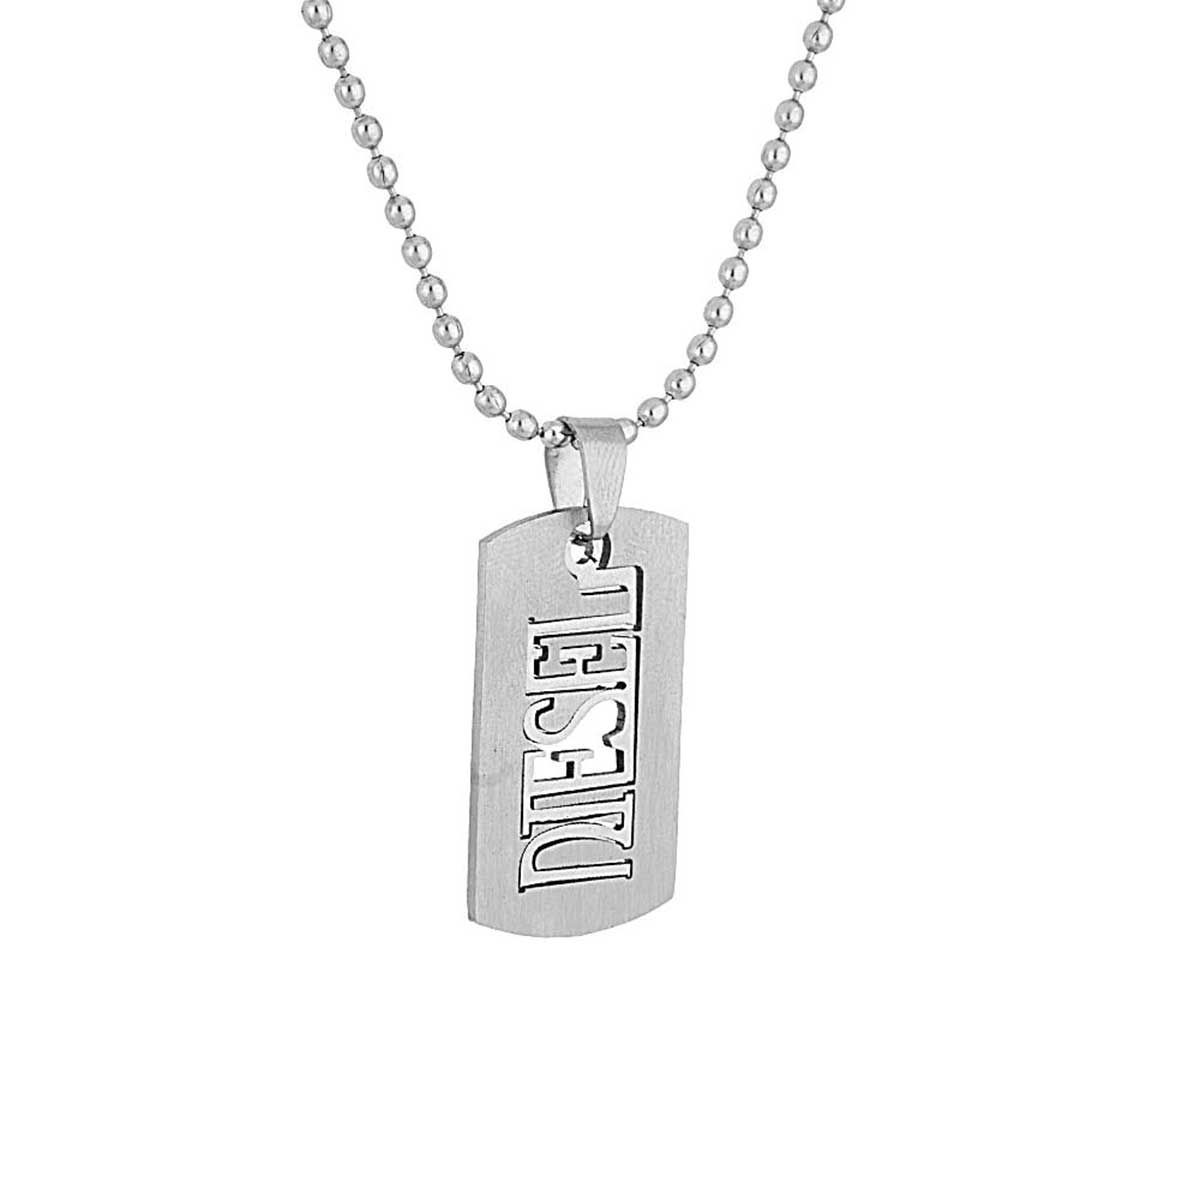 products necklace tungsten engraved men s simple personalized plate pendant steel crisscross img